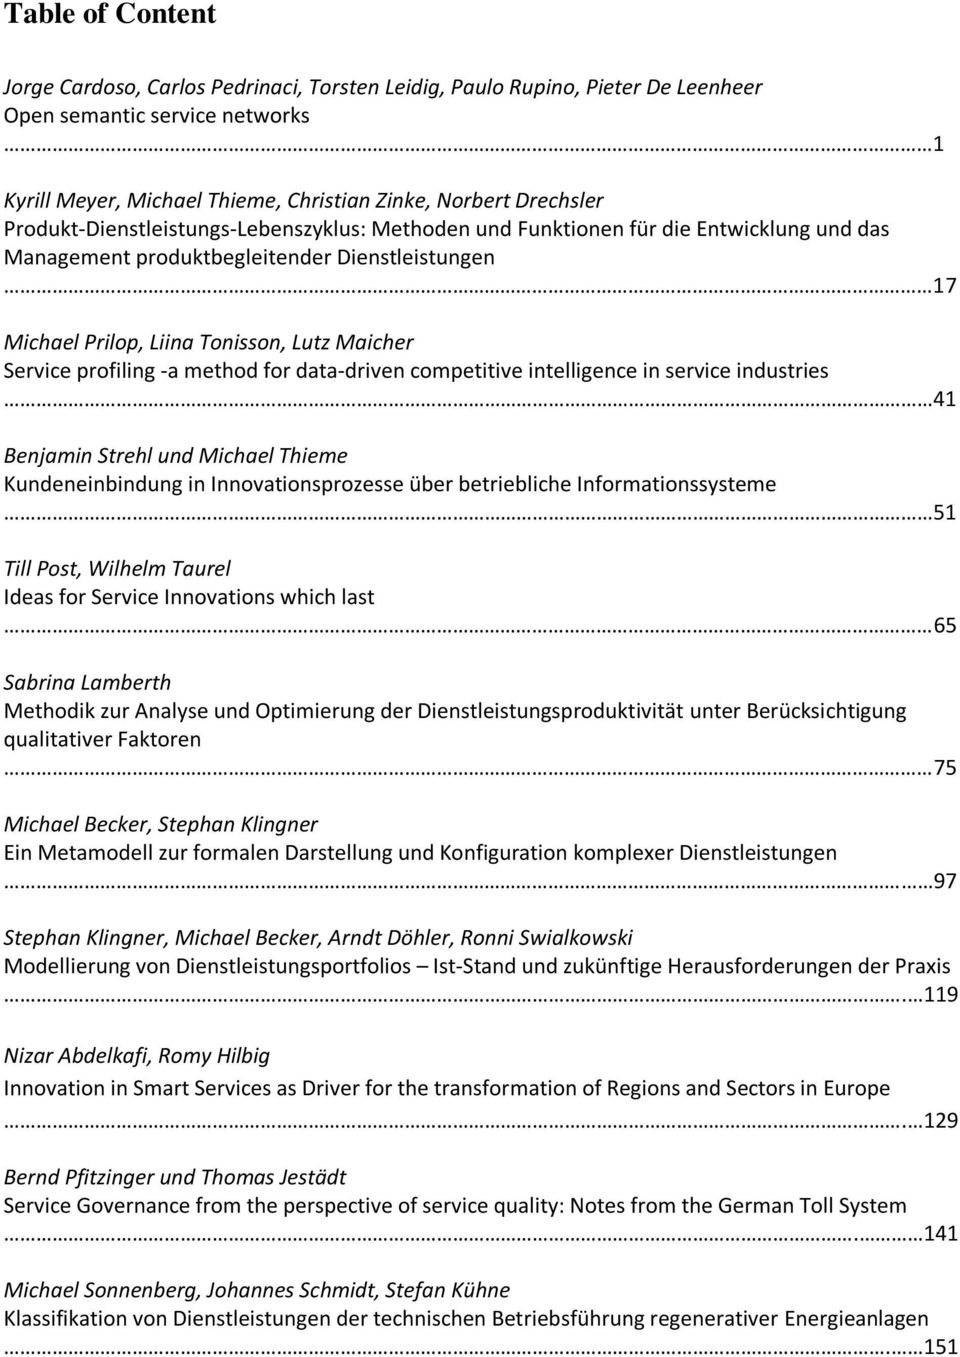 profiling -a method for data-driven competitive intelligence in service industries 41 Benjamin Strehl und Michael Thieme Kundeneinbindung in Innovationsprozesse über betriebliche Informationssysteme